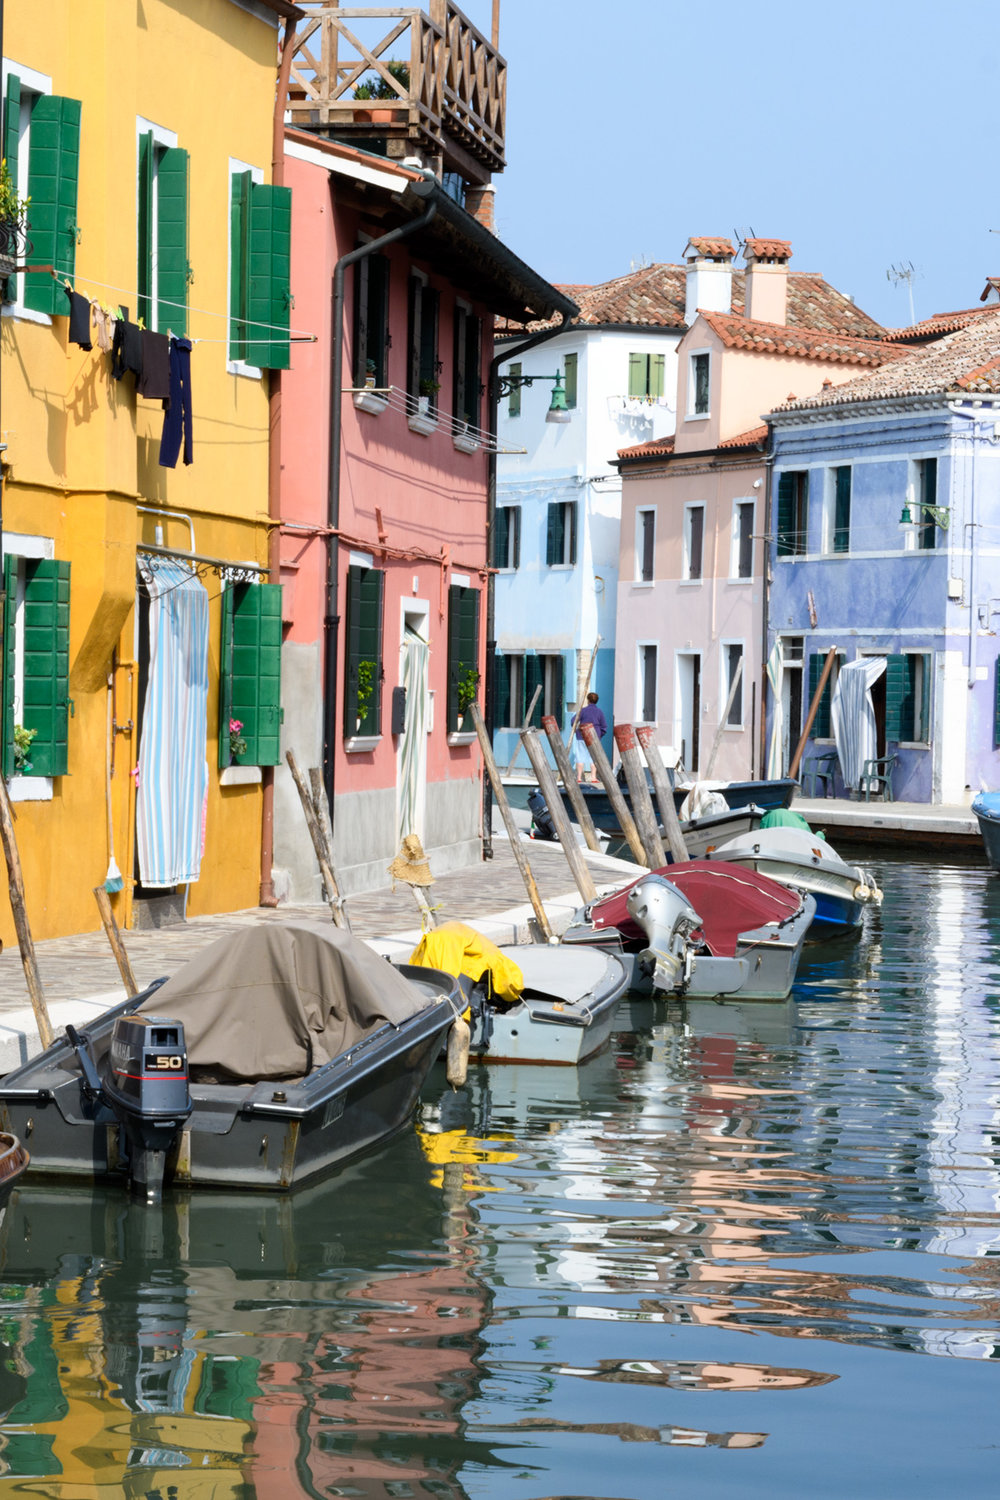 Colorful fisherman' homes in Burano